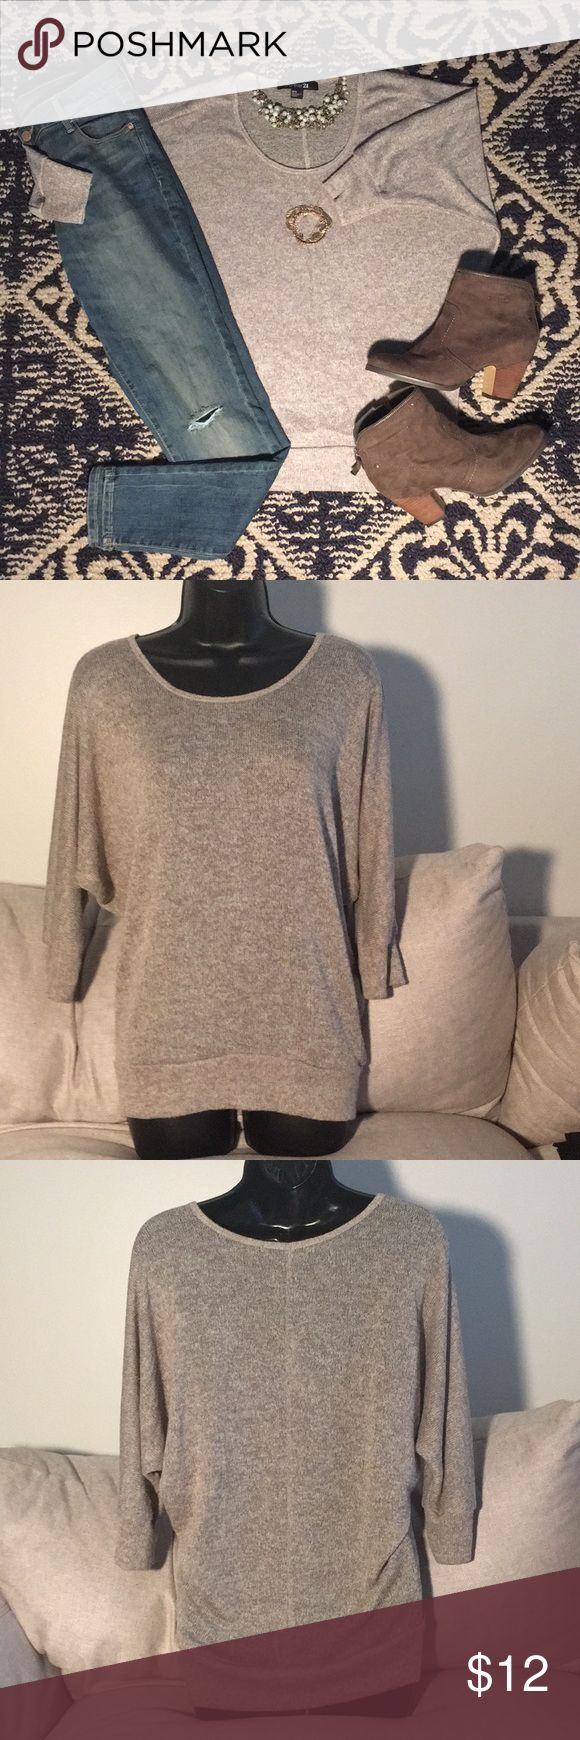 Lightweight Sweater • Goldish/Tanish stretchy semi sheer top • Cocoon sleeves • Cinches at the hem giving a defined shape to your top half • 49% Polyester, 44% Rayon, 7% Spandex Forever 21 Sweaters Crew & Scoop Necks